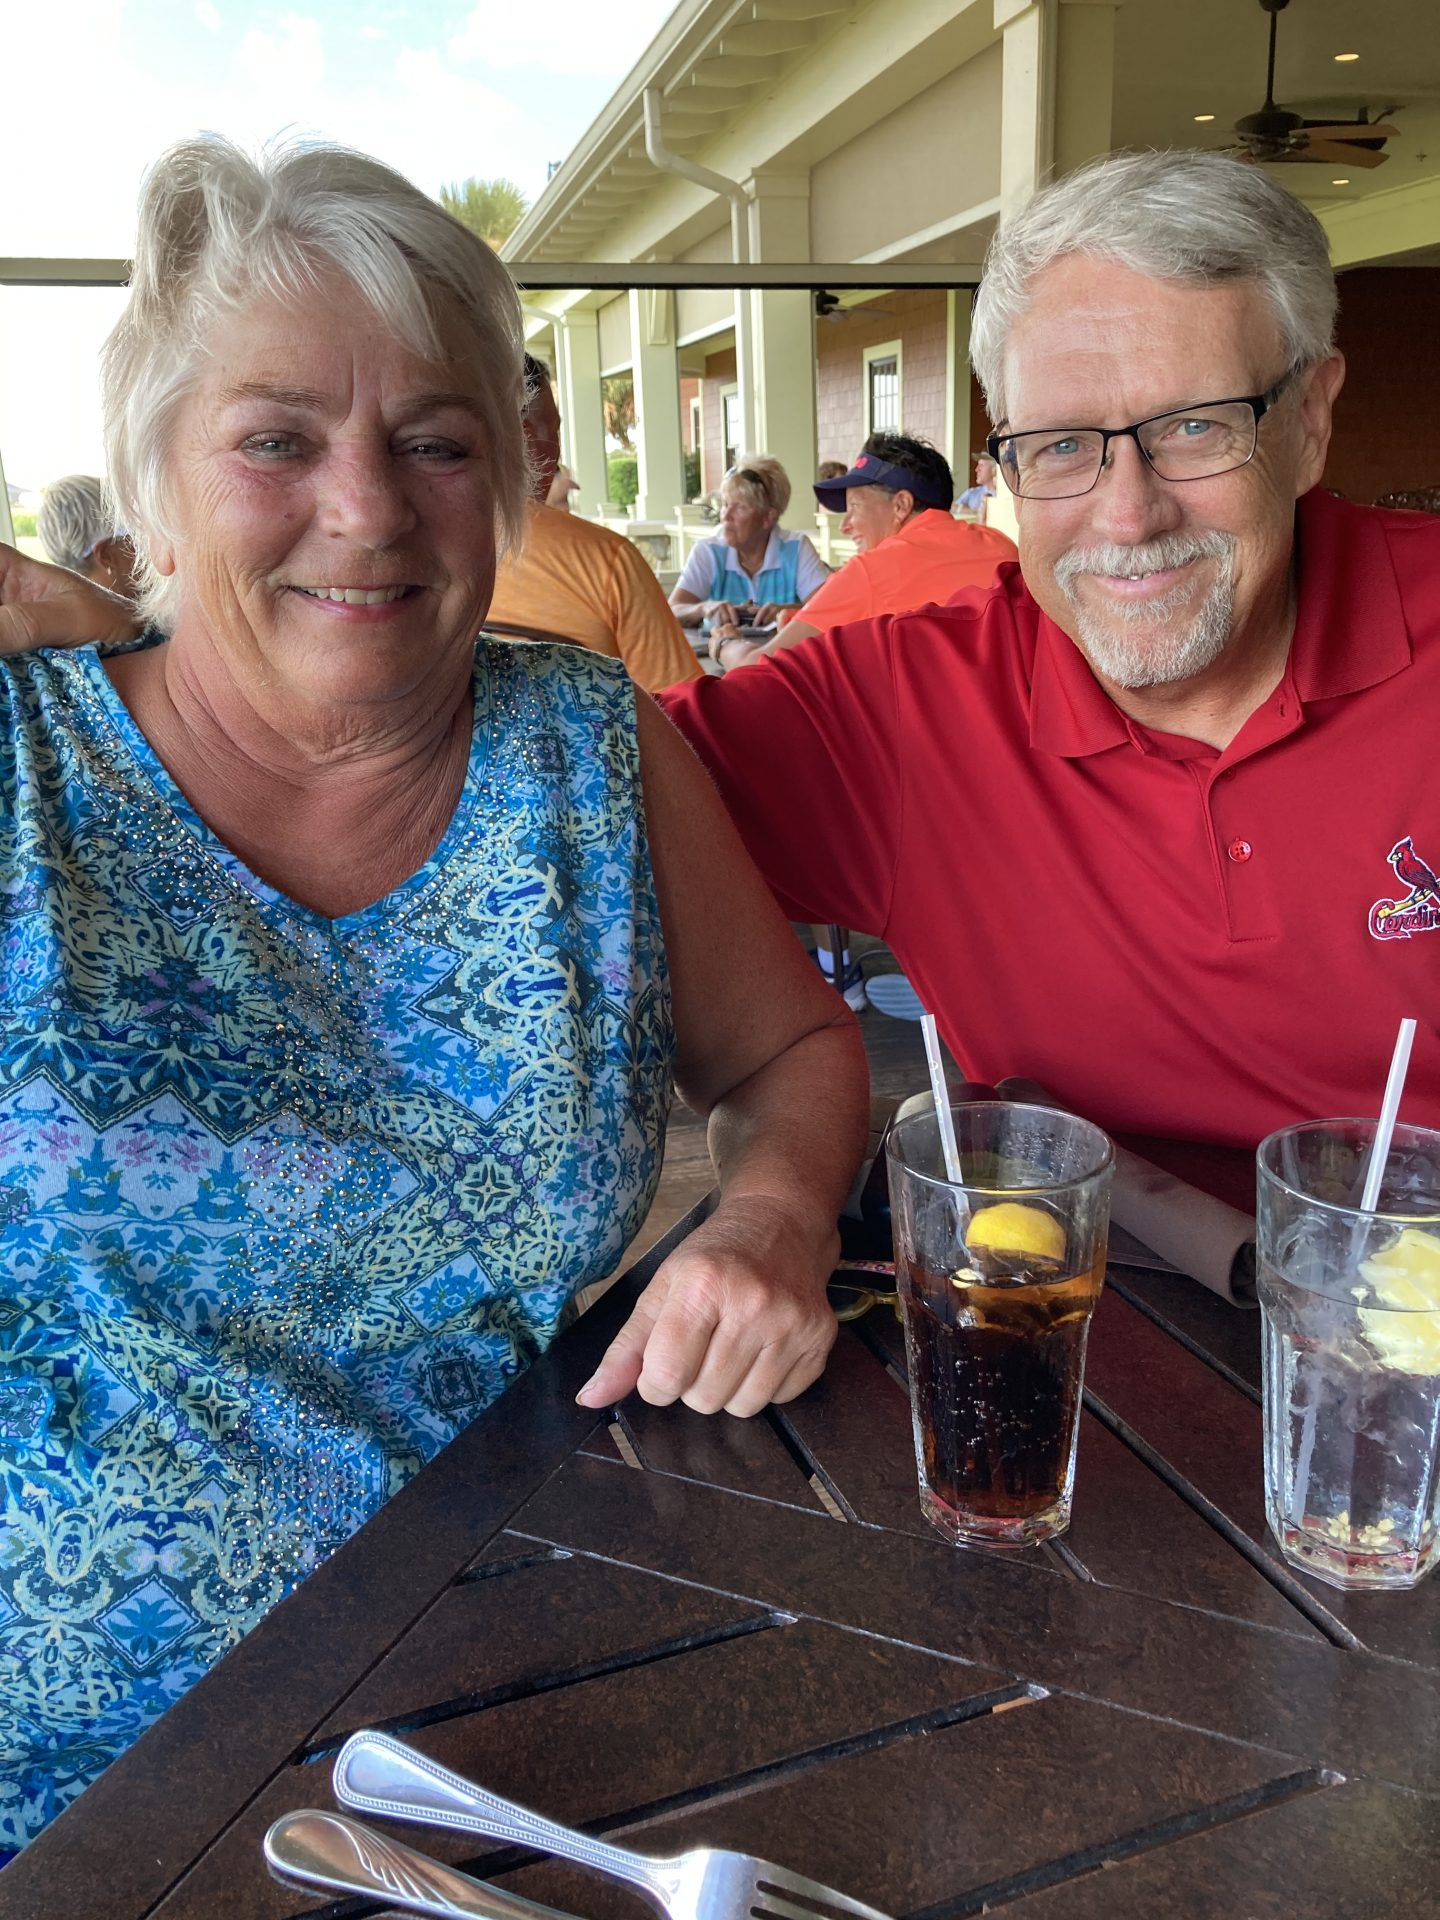 Artie and I had dinner with John and Suzy over the summer at Evans Prairie Country Club.